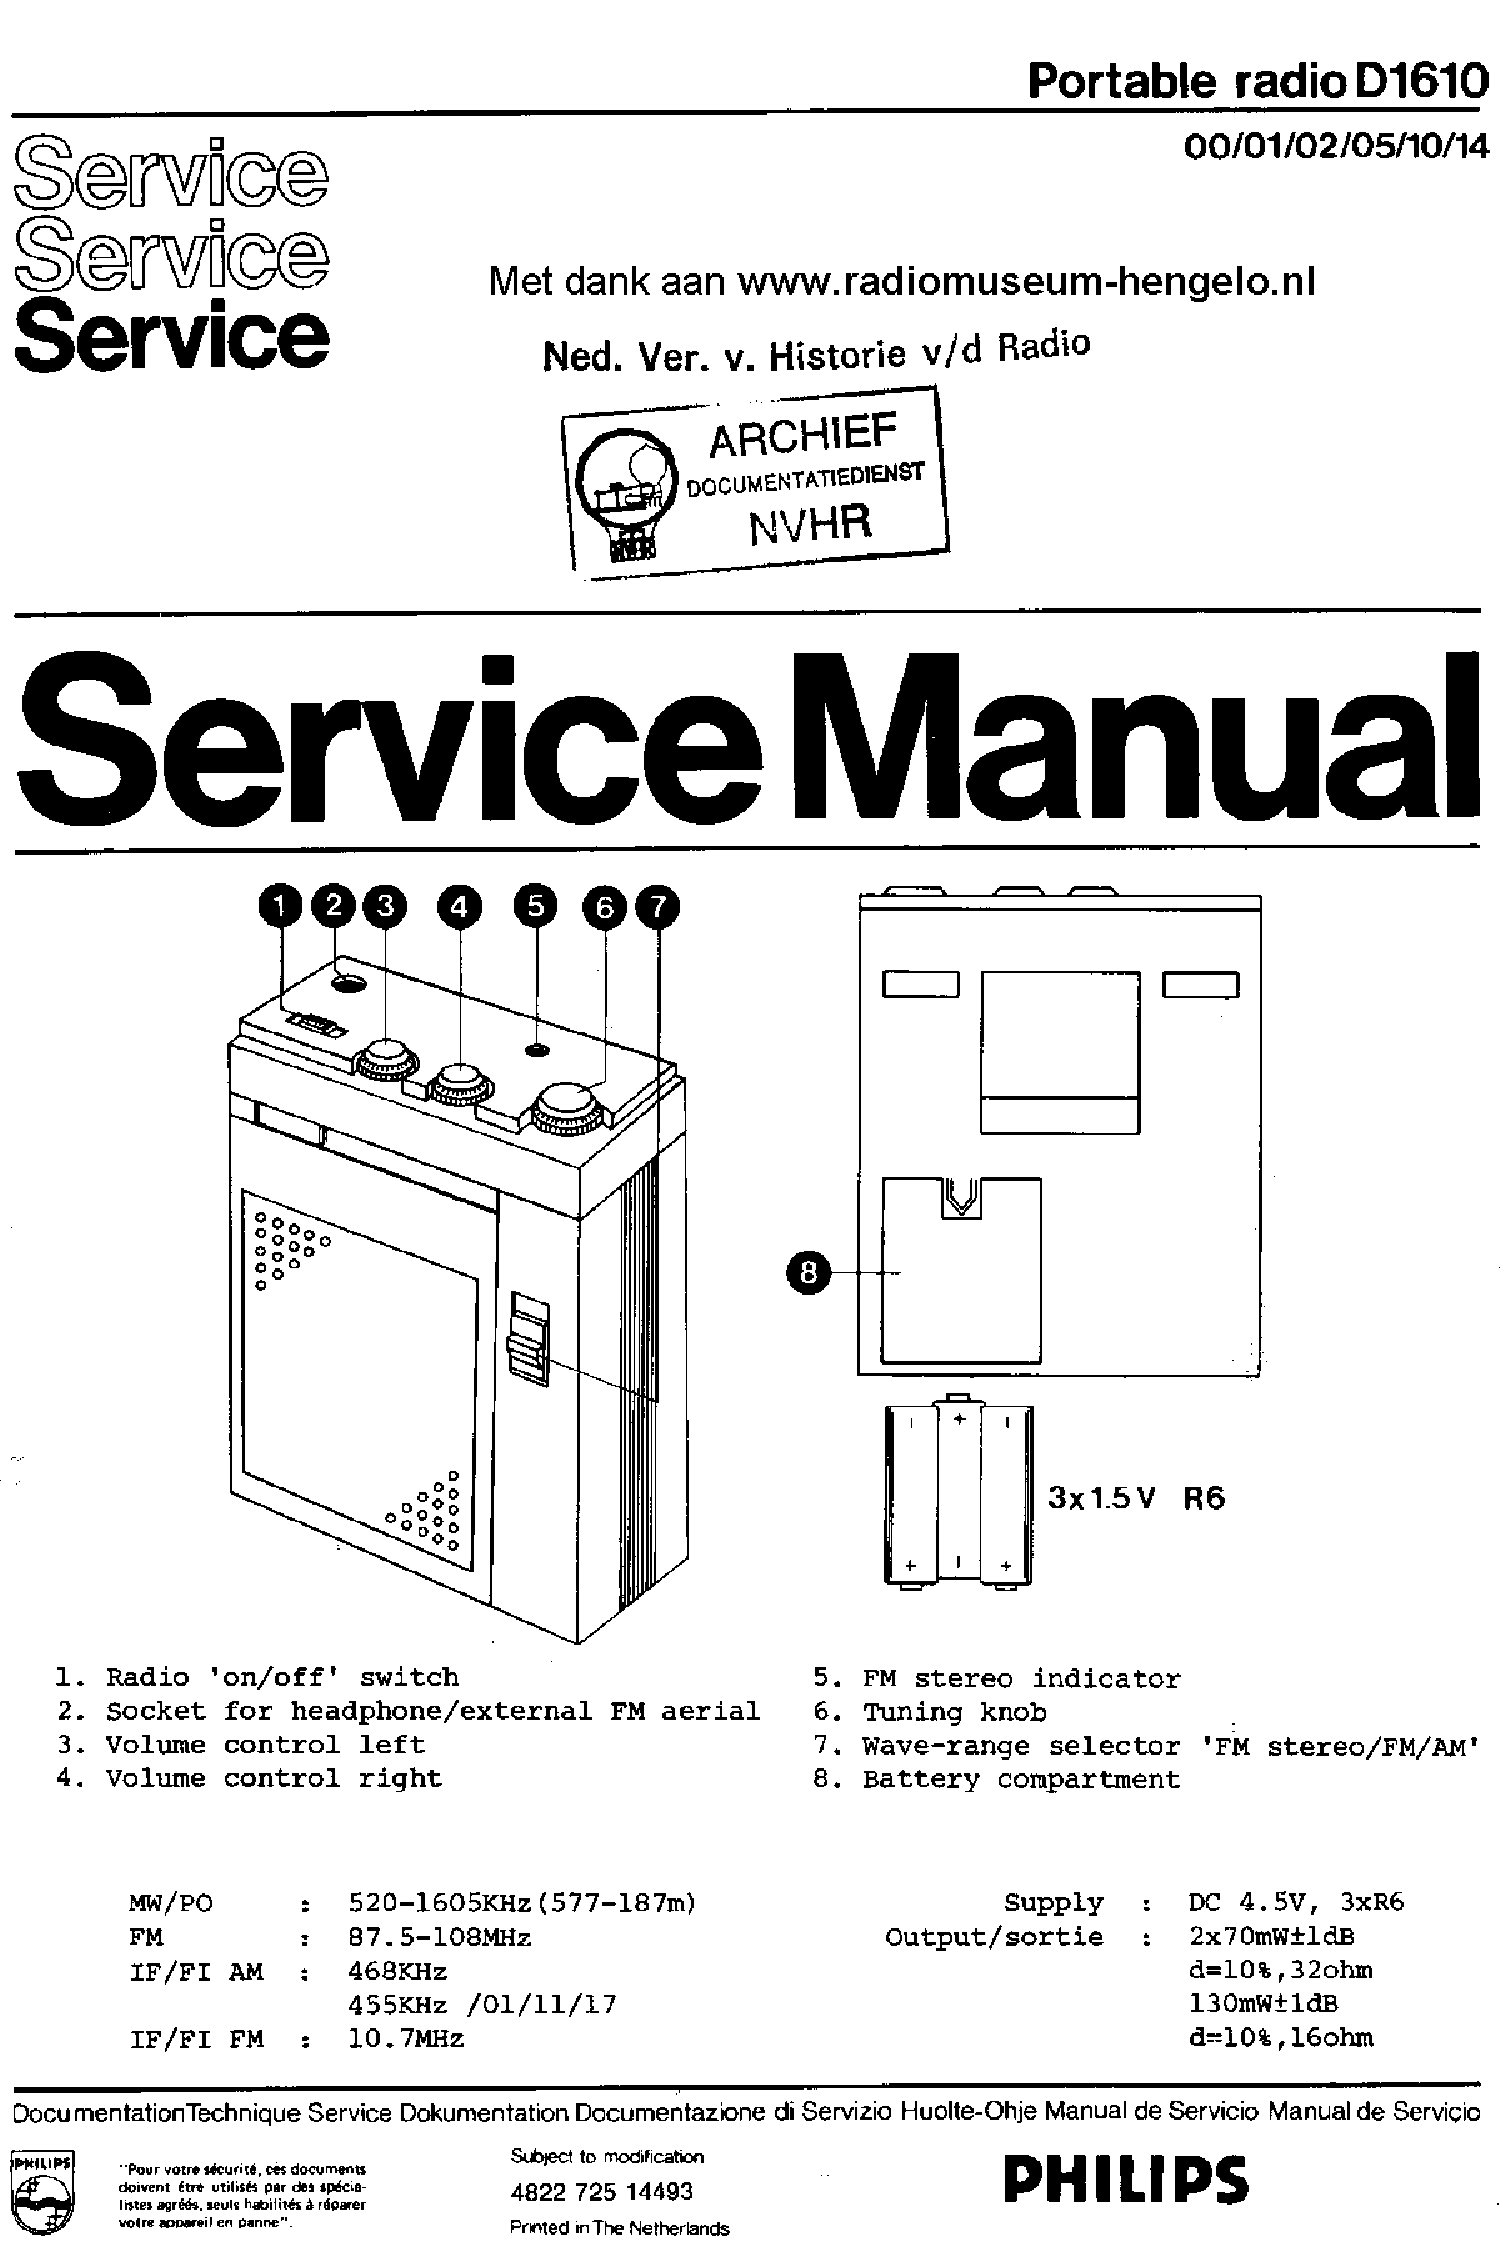 PHILIPS D1610-00-01-02-05-10-14 PORTABLE AM-FM RADIO SM service manual (1st page)